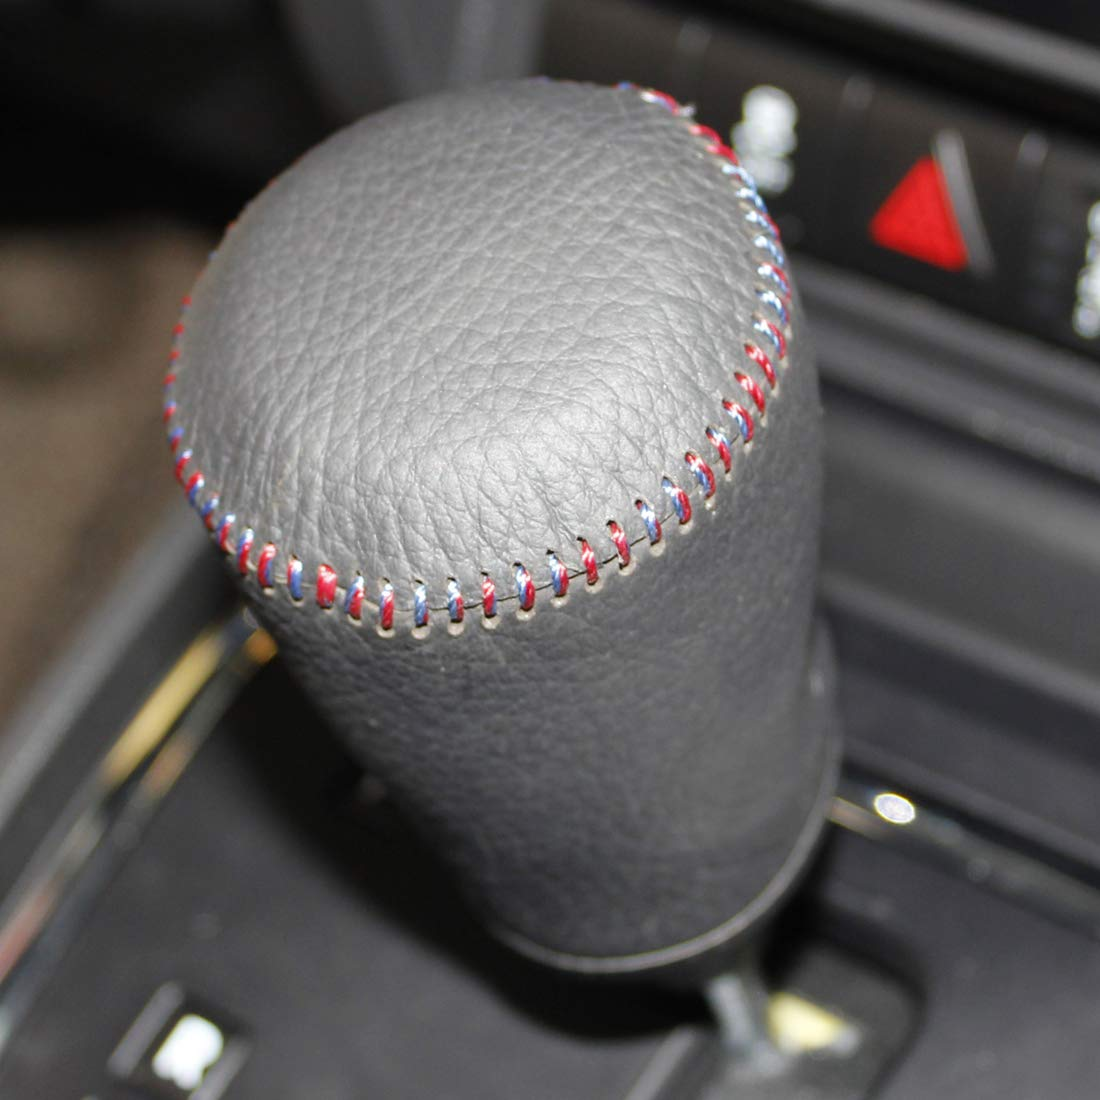 JI Loncky Genuine Leather Gear Shift Knob Cover for 2007 2008 2009 2010 2011 2012 2013 2014 2015 2016 Jeep Compass Automatic 2007 2008 2009 2010 2011 2012 2013 2014 2015 2016 Jeep Patriot Automatic